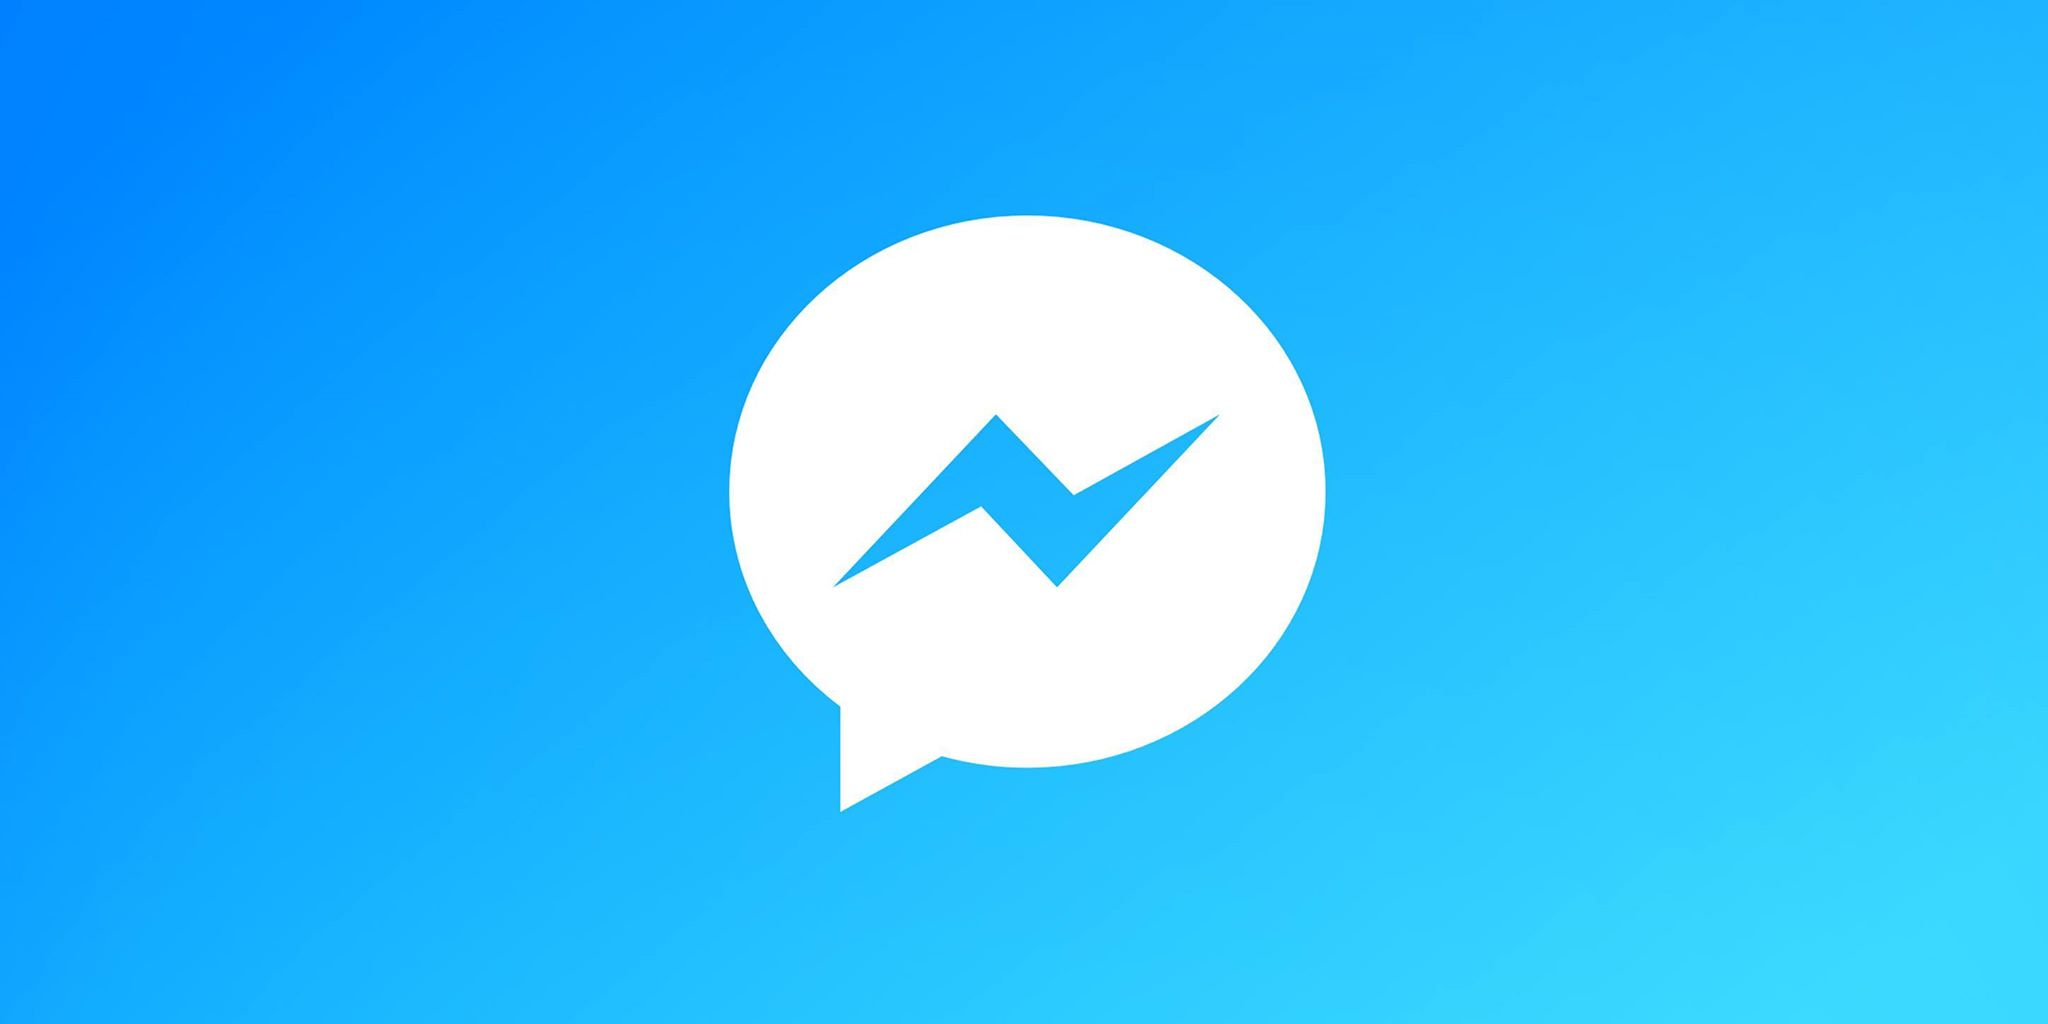 Introducing The Facebook Messenger For Android Beta Testing Program Facebook Engineering